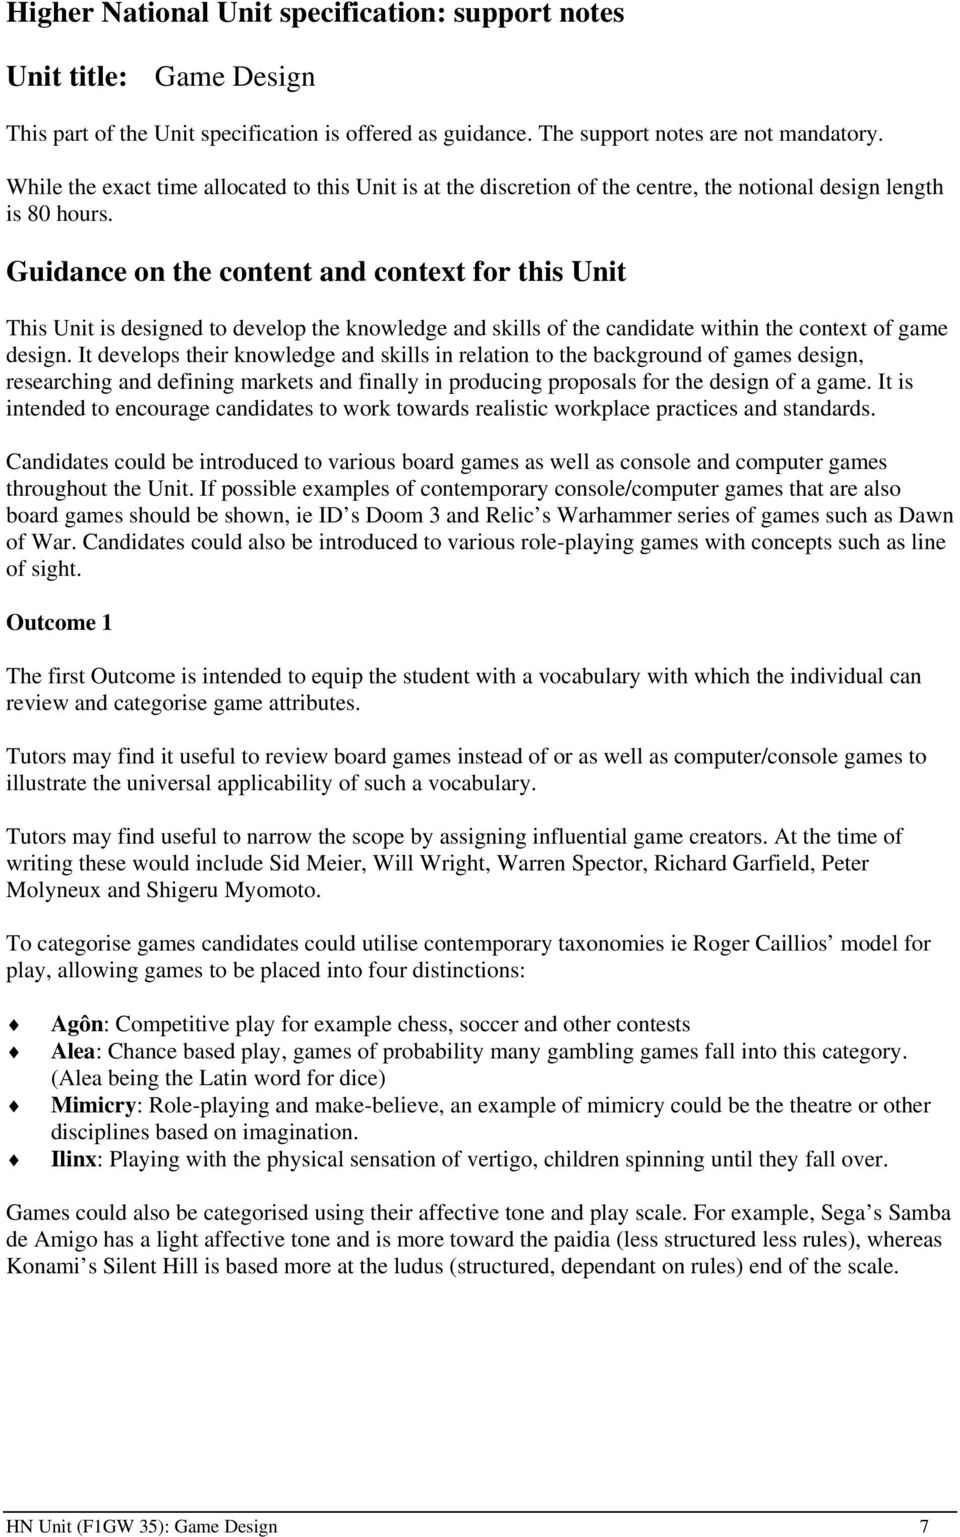 Guidance on the content and context for this Unit This Unit is designed to develop the knowledge and skills of the candidate within the context of game design.